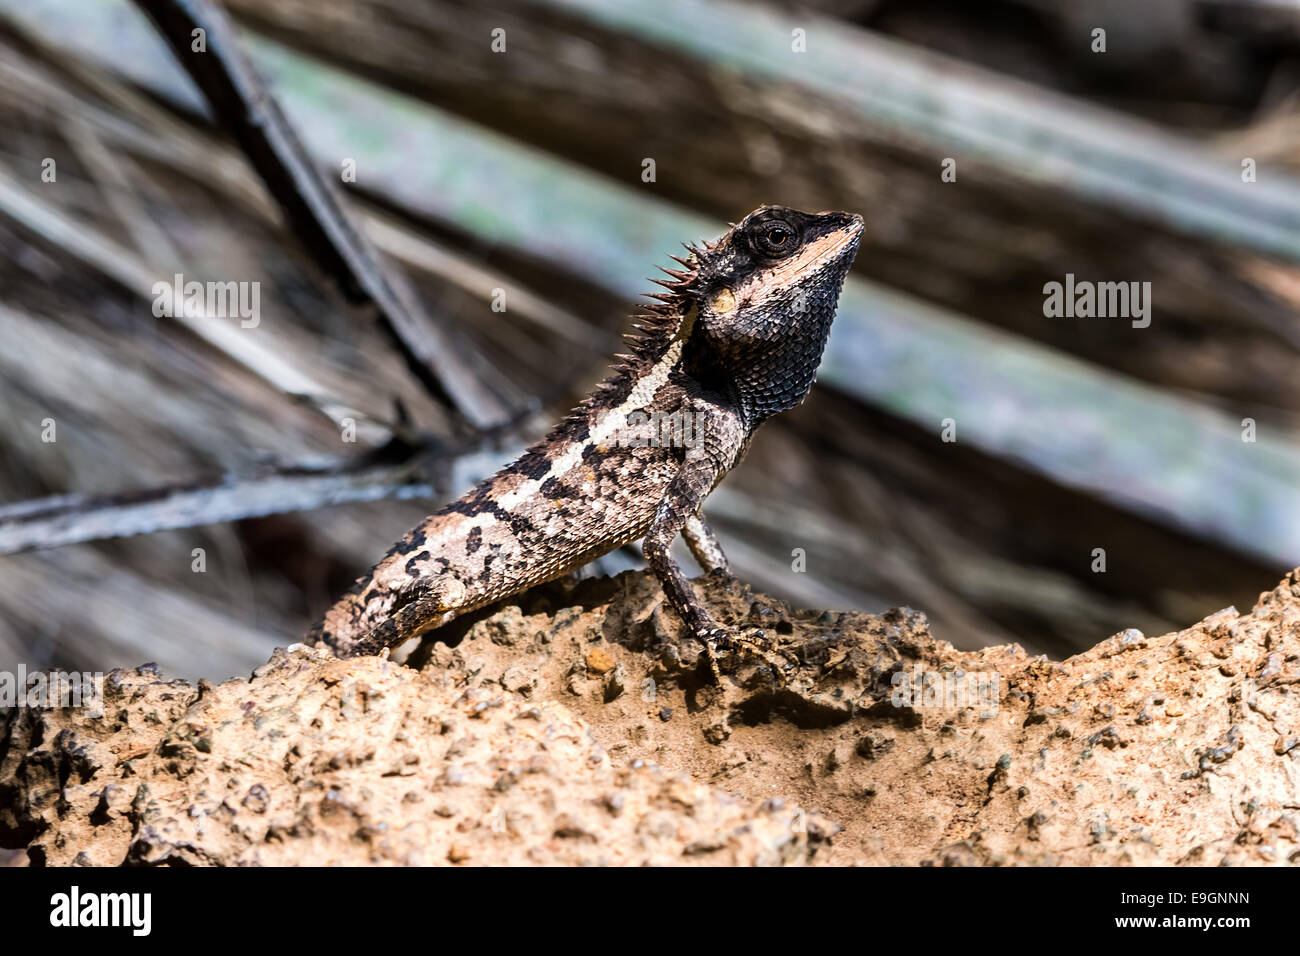 Lizard, reptile sitting on Rock in Thailand. - Stock Image